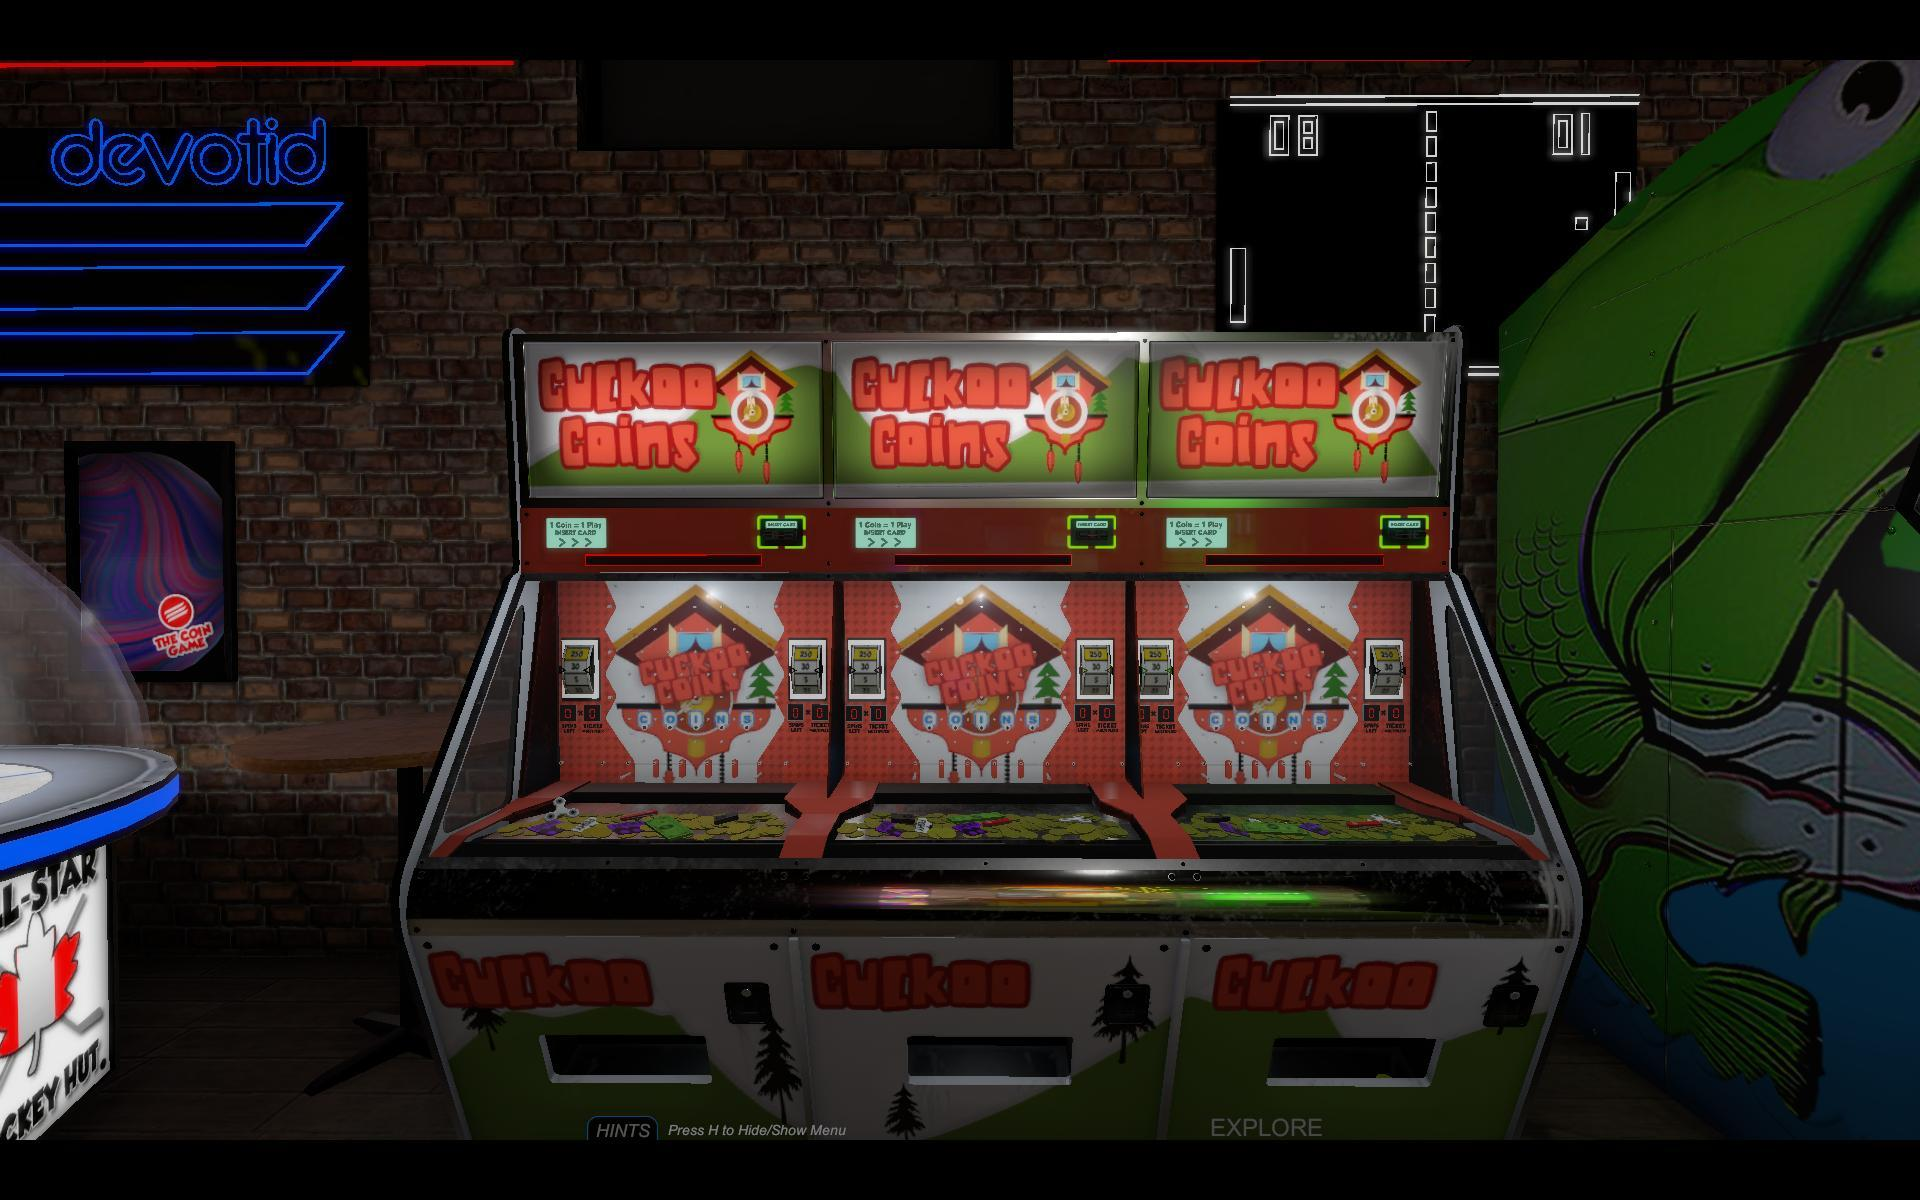 Feb 22 The Arcade is OPEN FOR BUSINESS! The Coin Game